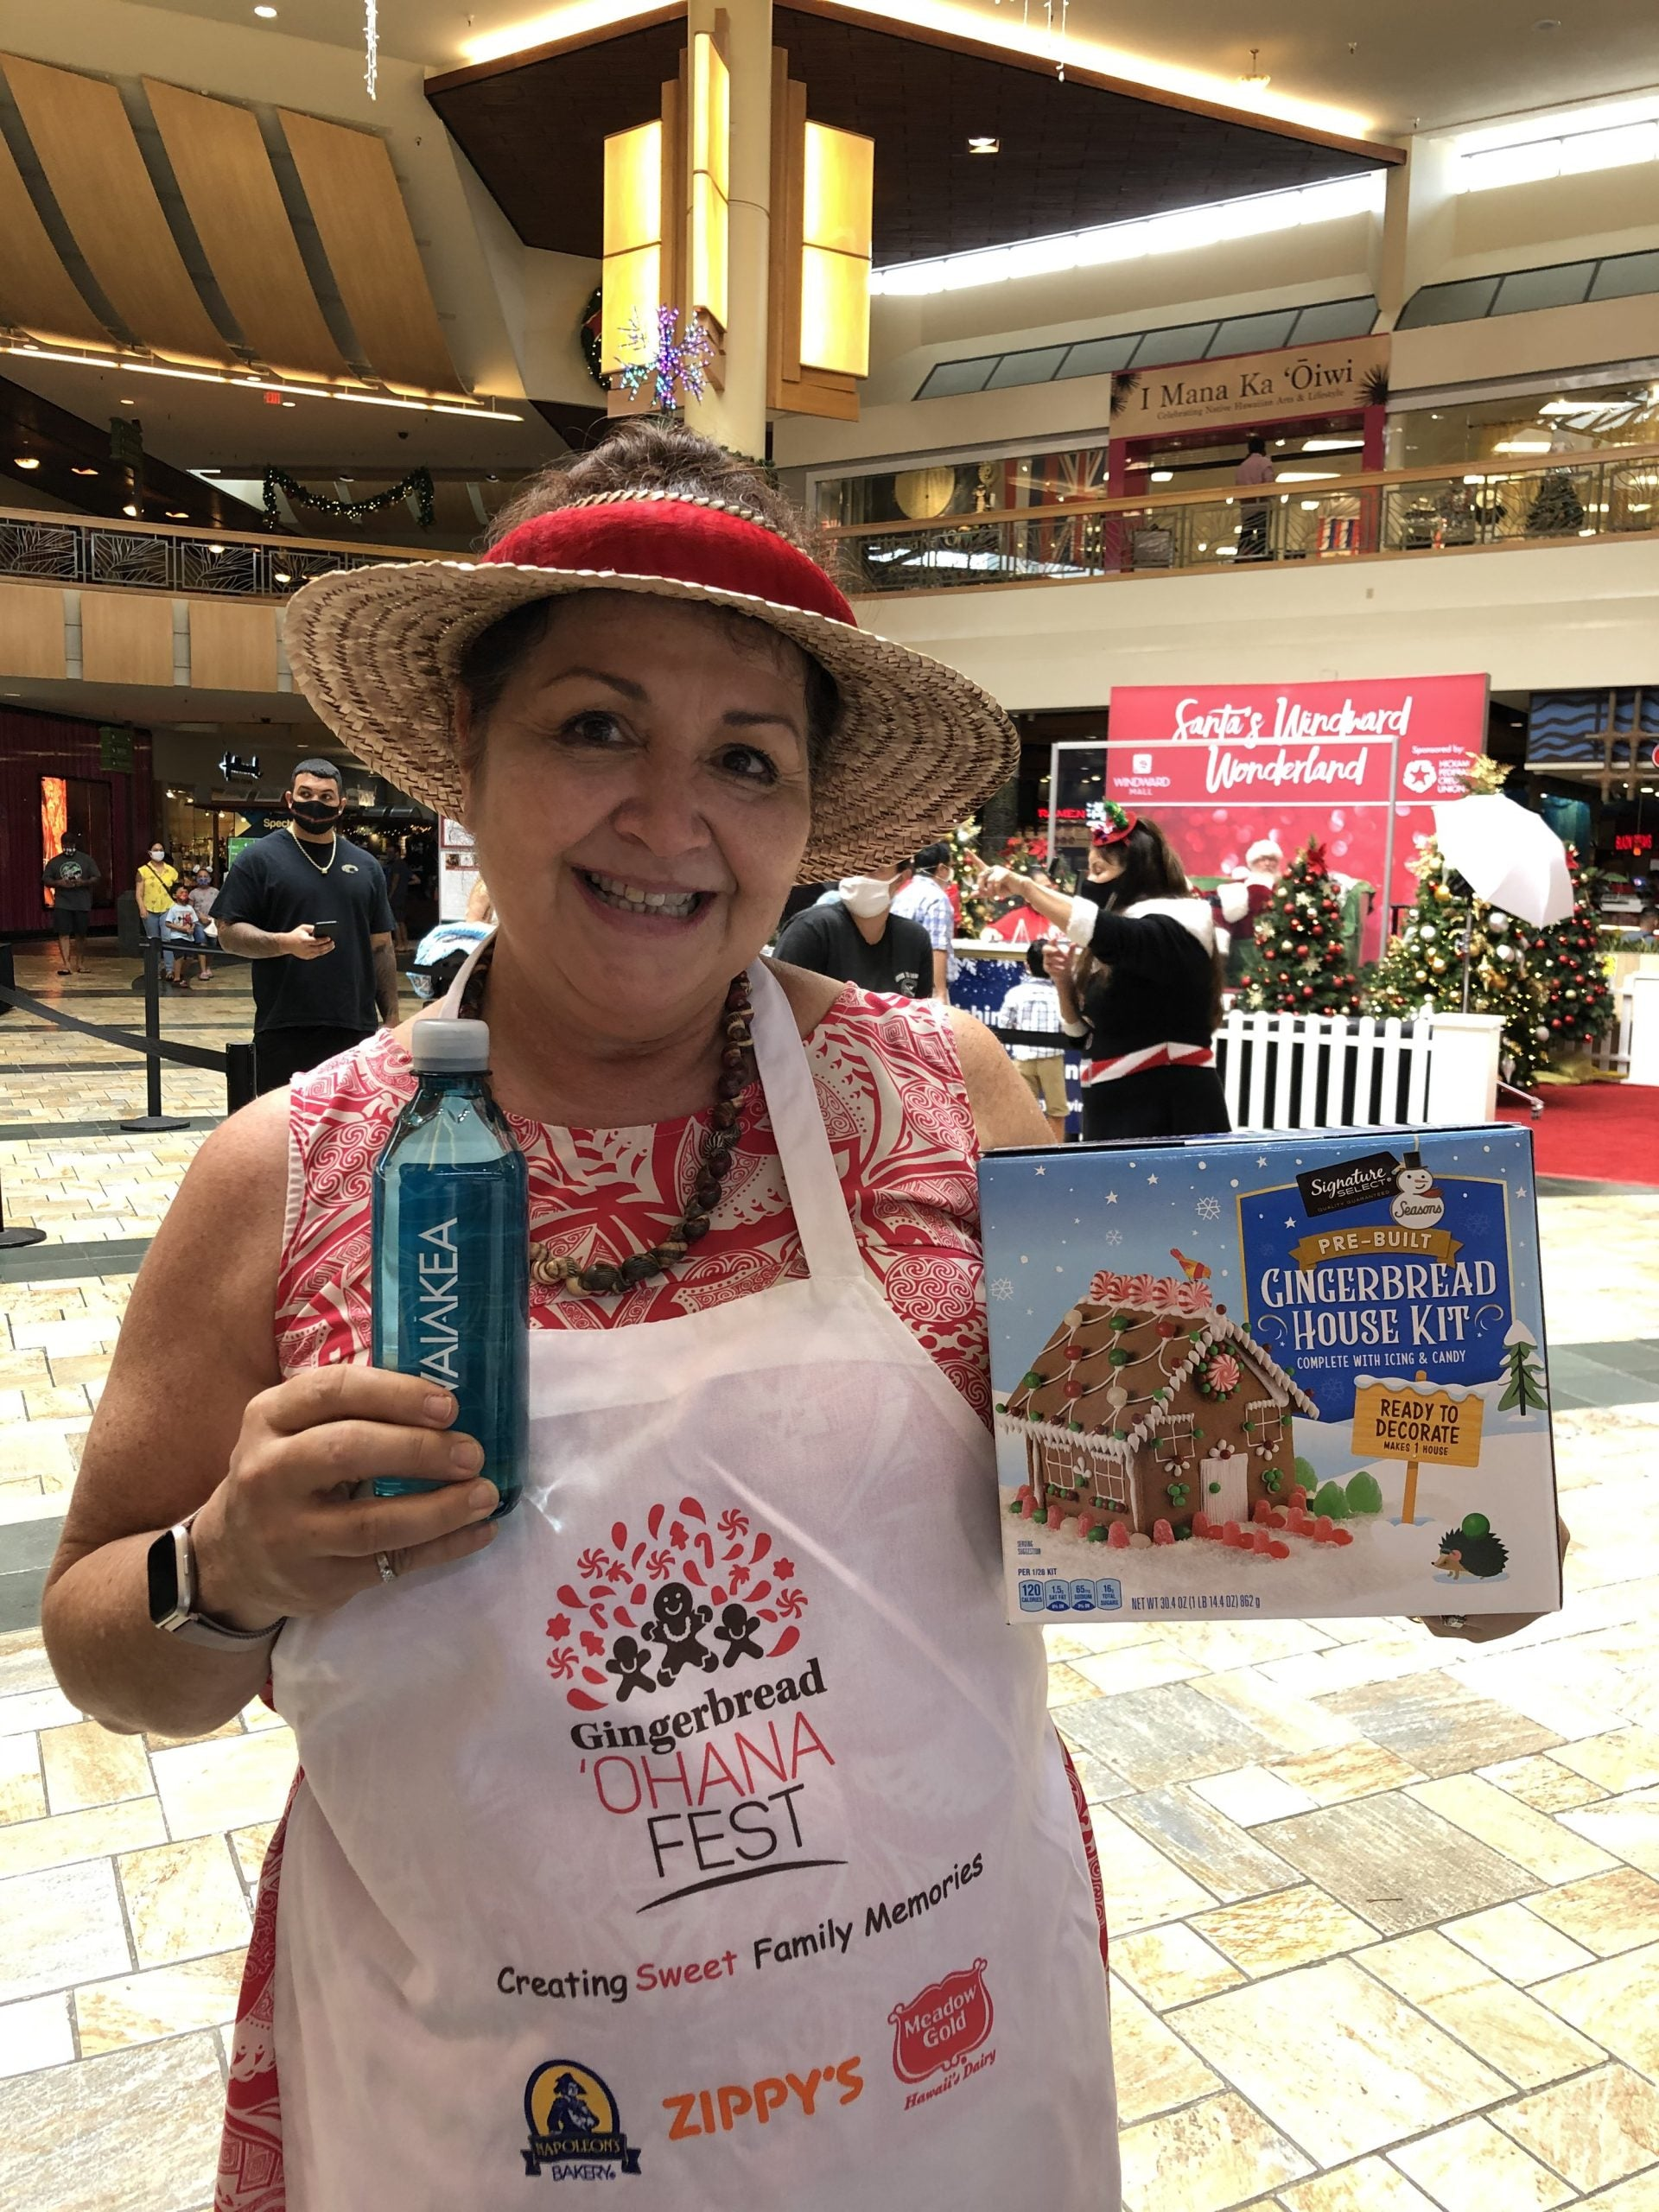 Woman holding Waiakea water and gingerbread house kit